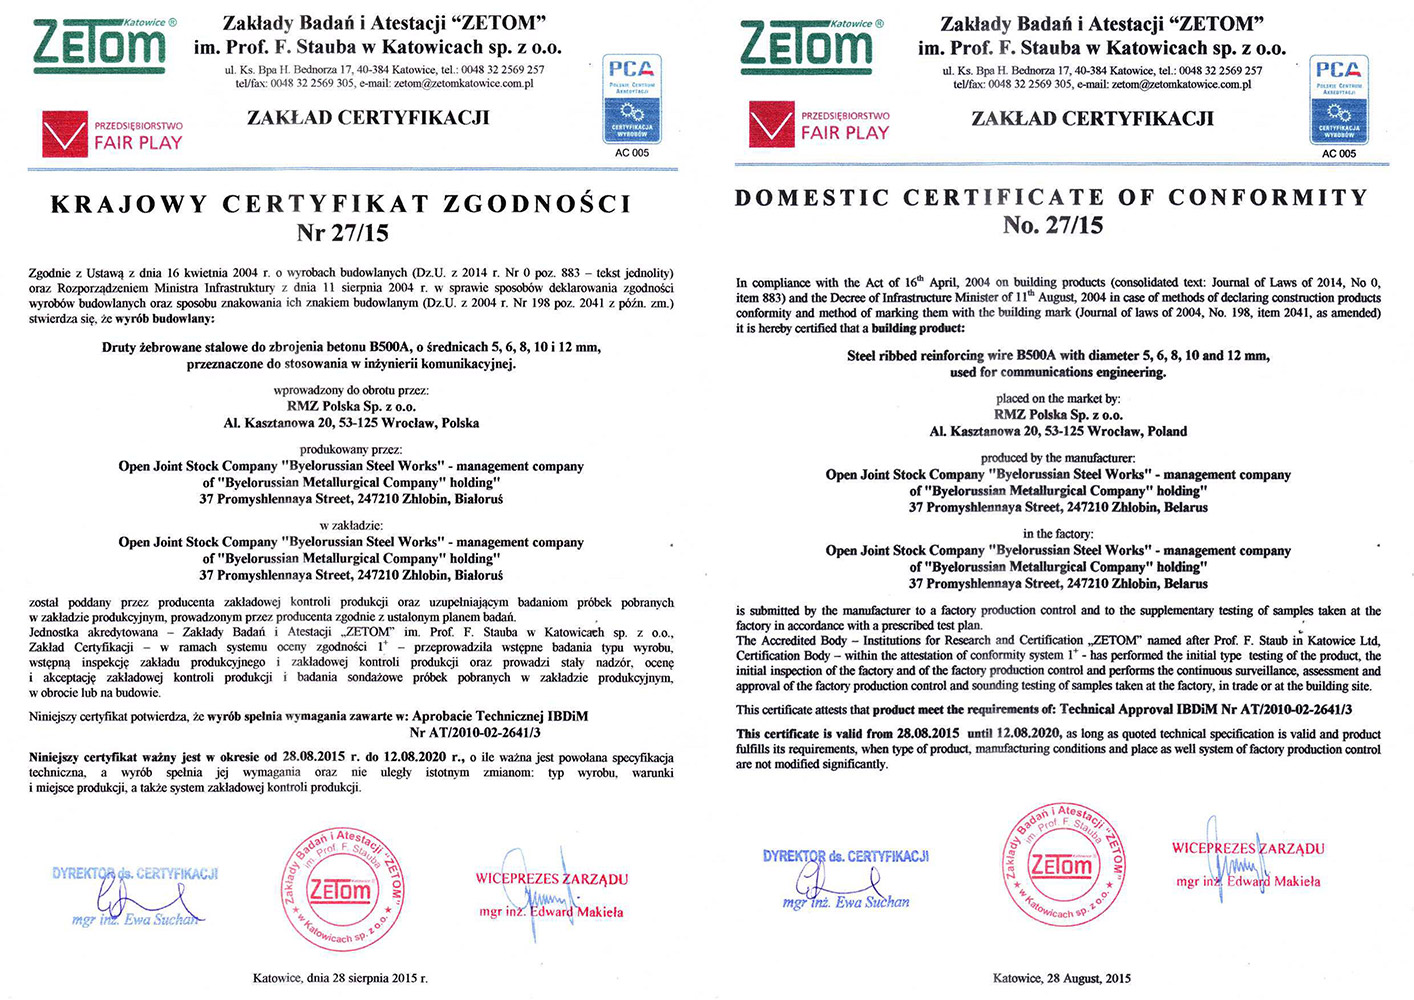 Certificate №27/15 for production of steel ribbed reinforcing wire B500A ø 6, 8, 10 и 12mm according to the requirements of Technical Approval IBDiM №AT/2010-02-2641/3